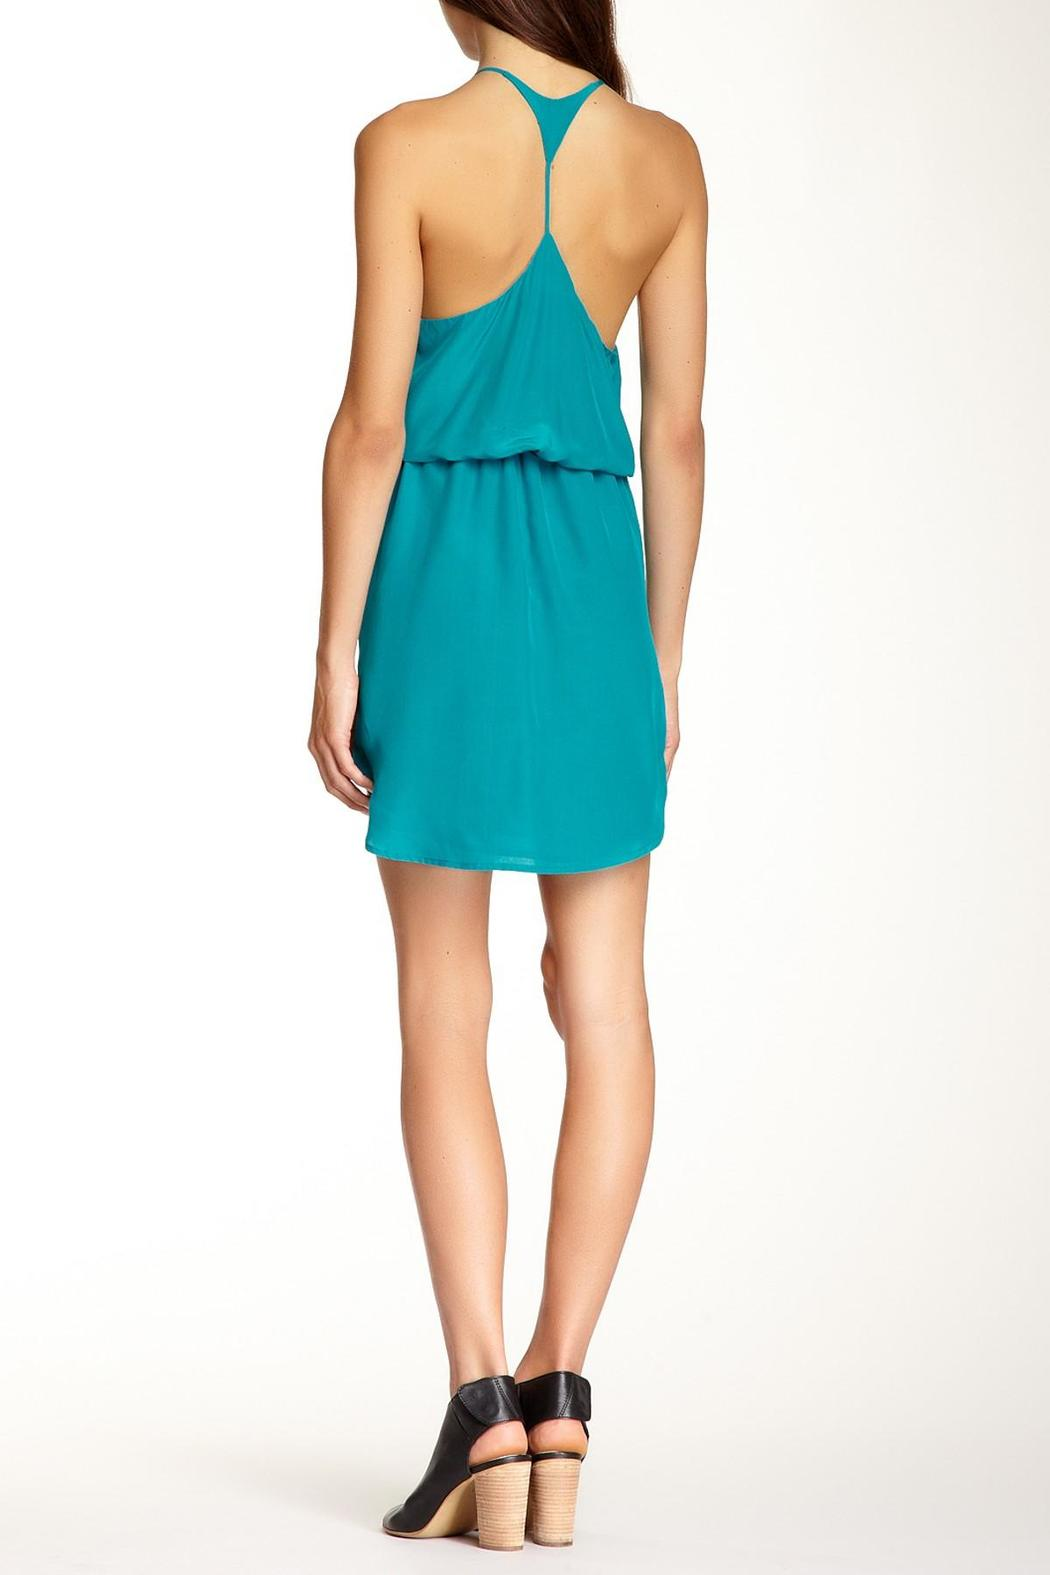 Rieley Sleeveless Racerback Dress - Front Full Image